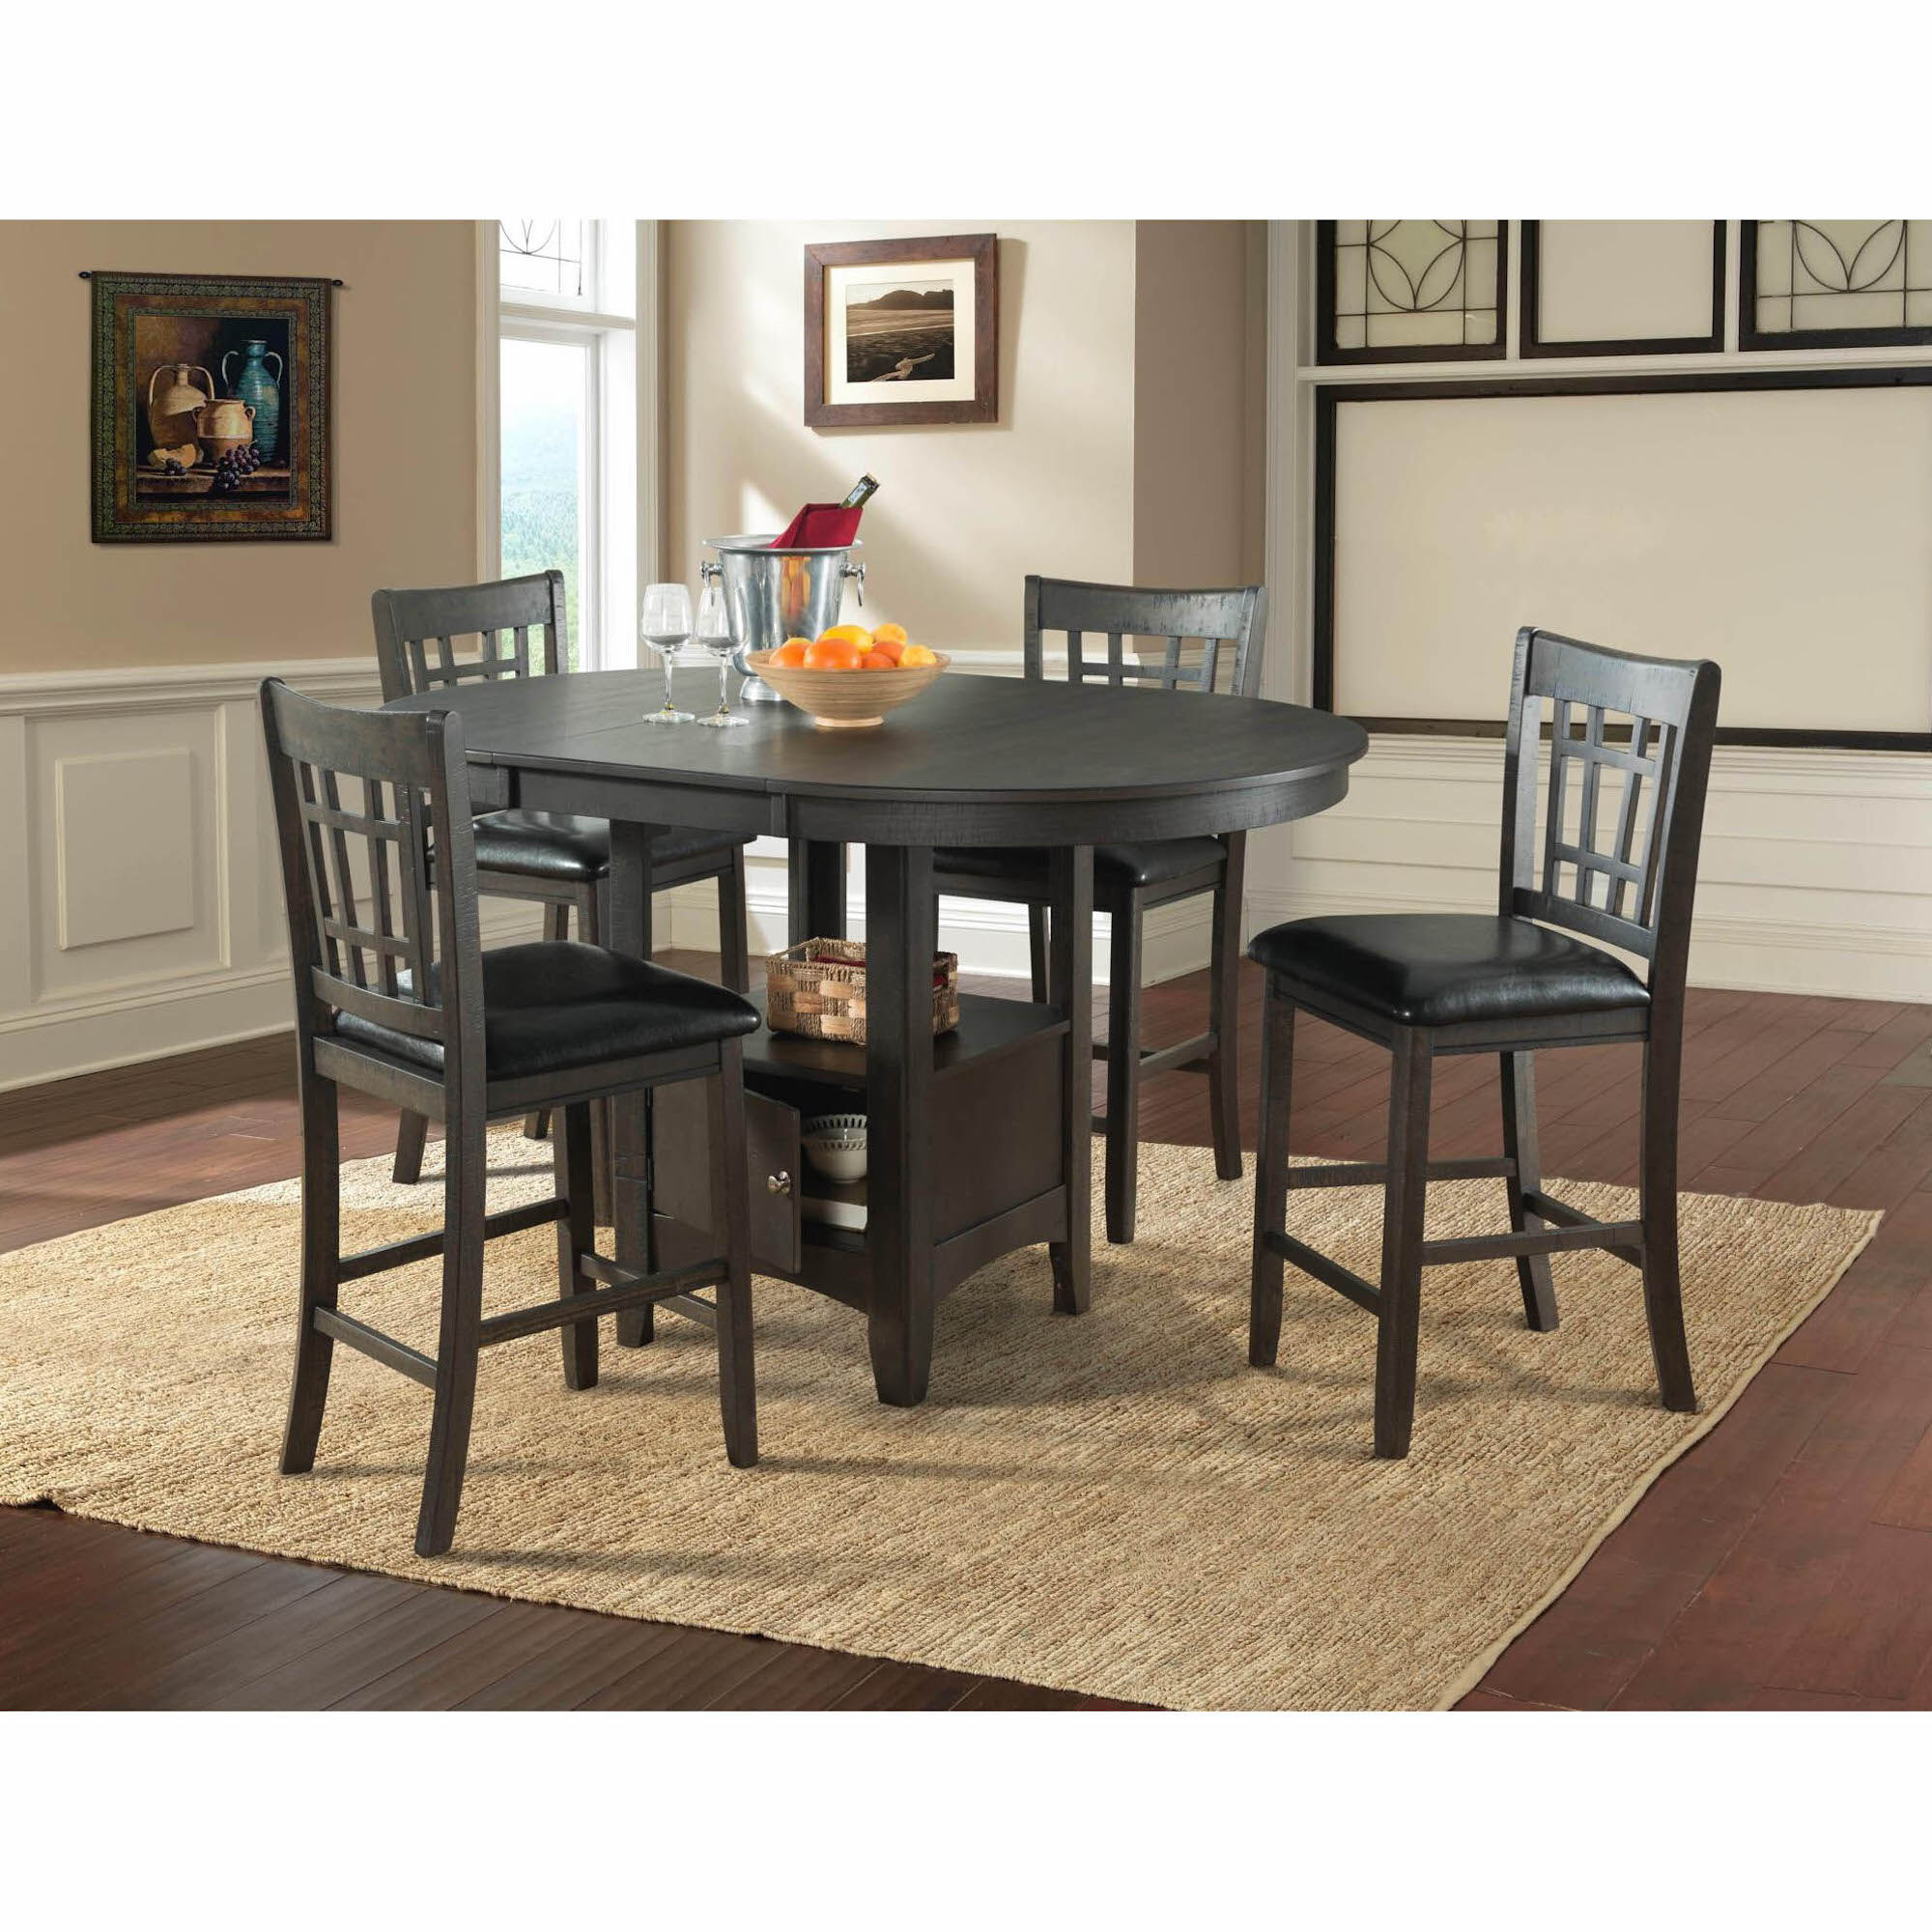 5 Piece Max Dining Room Collection